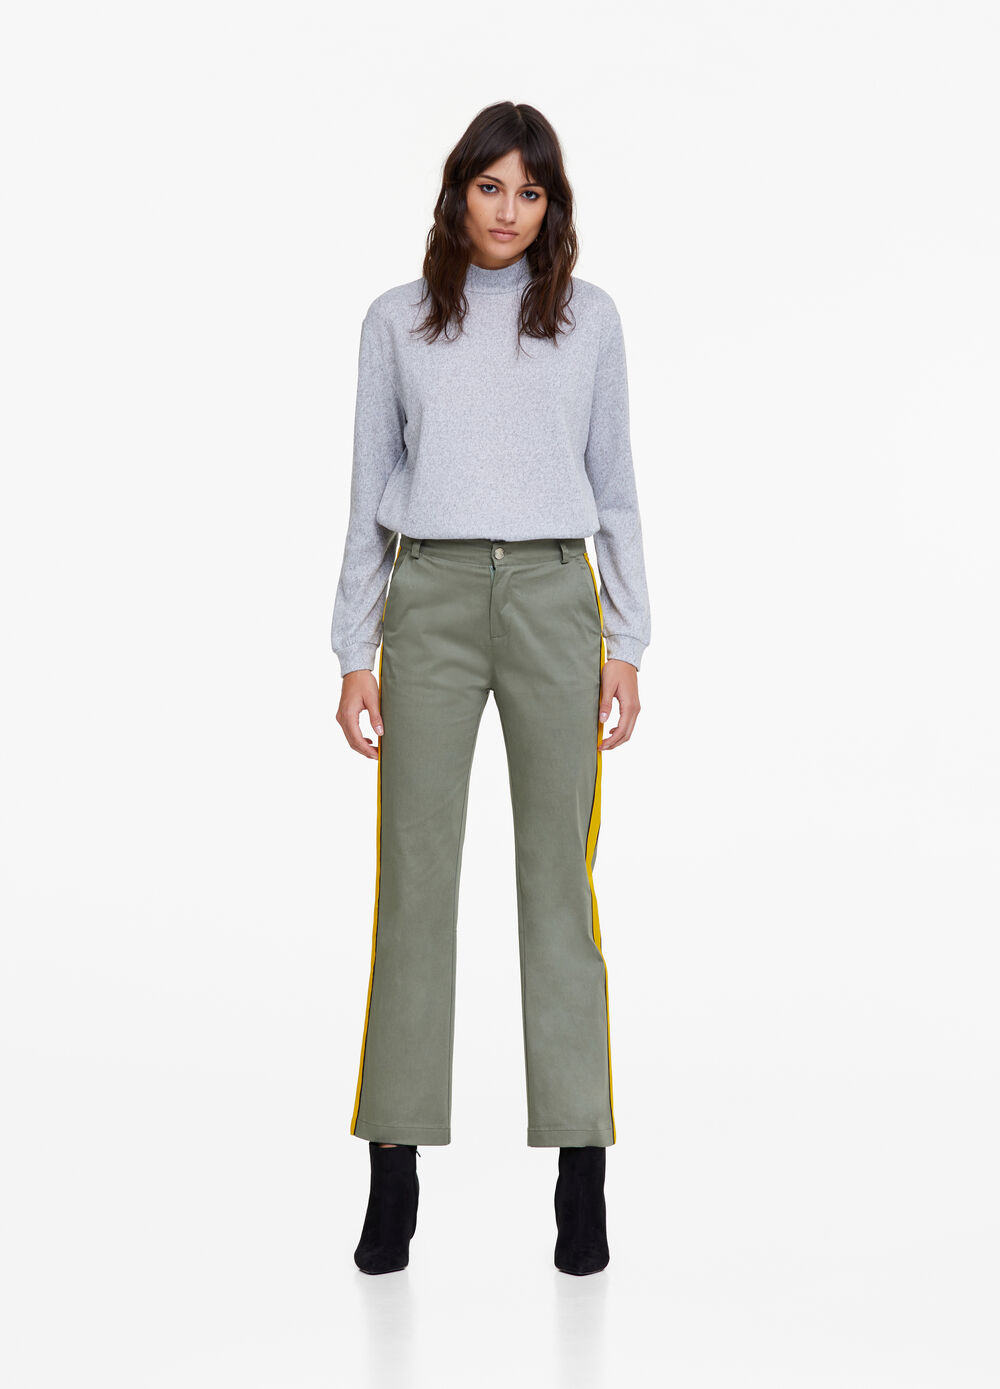 K+K for OVS solid colour trousers